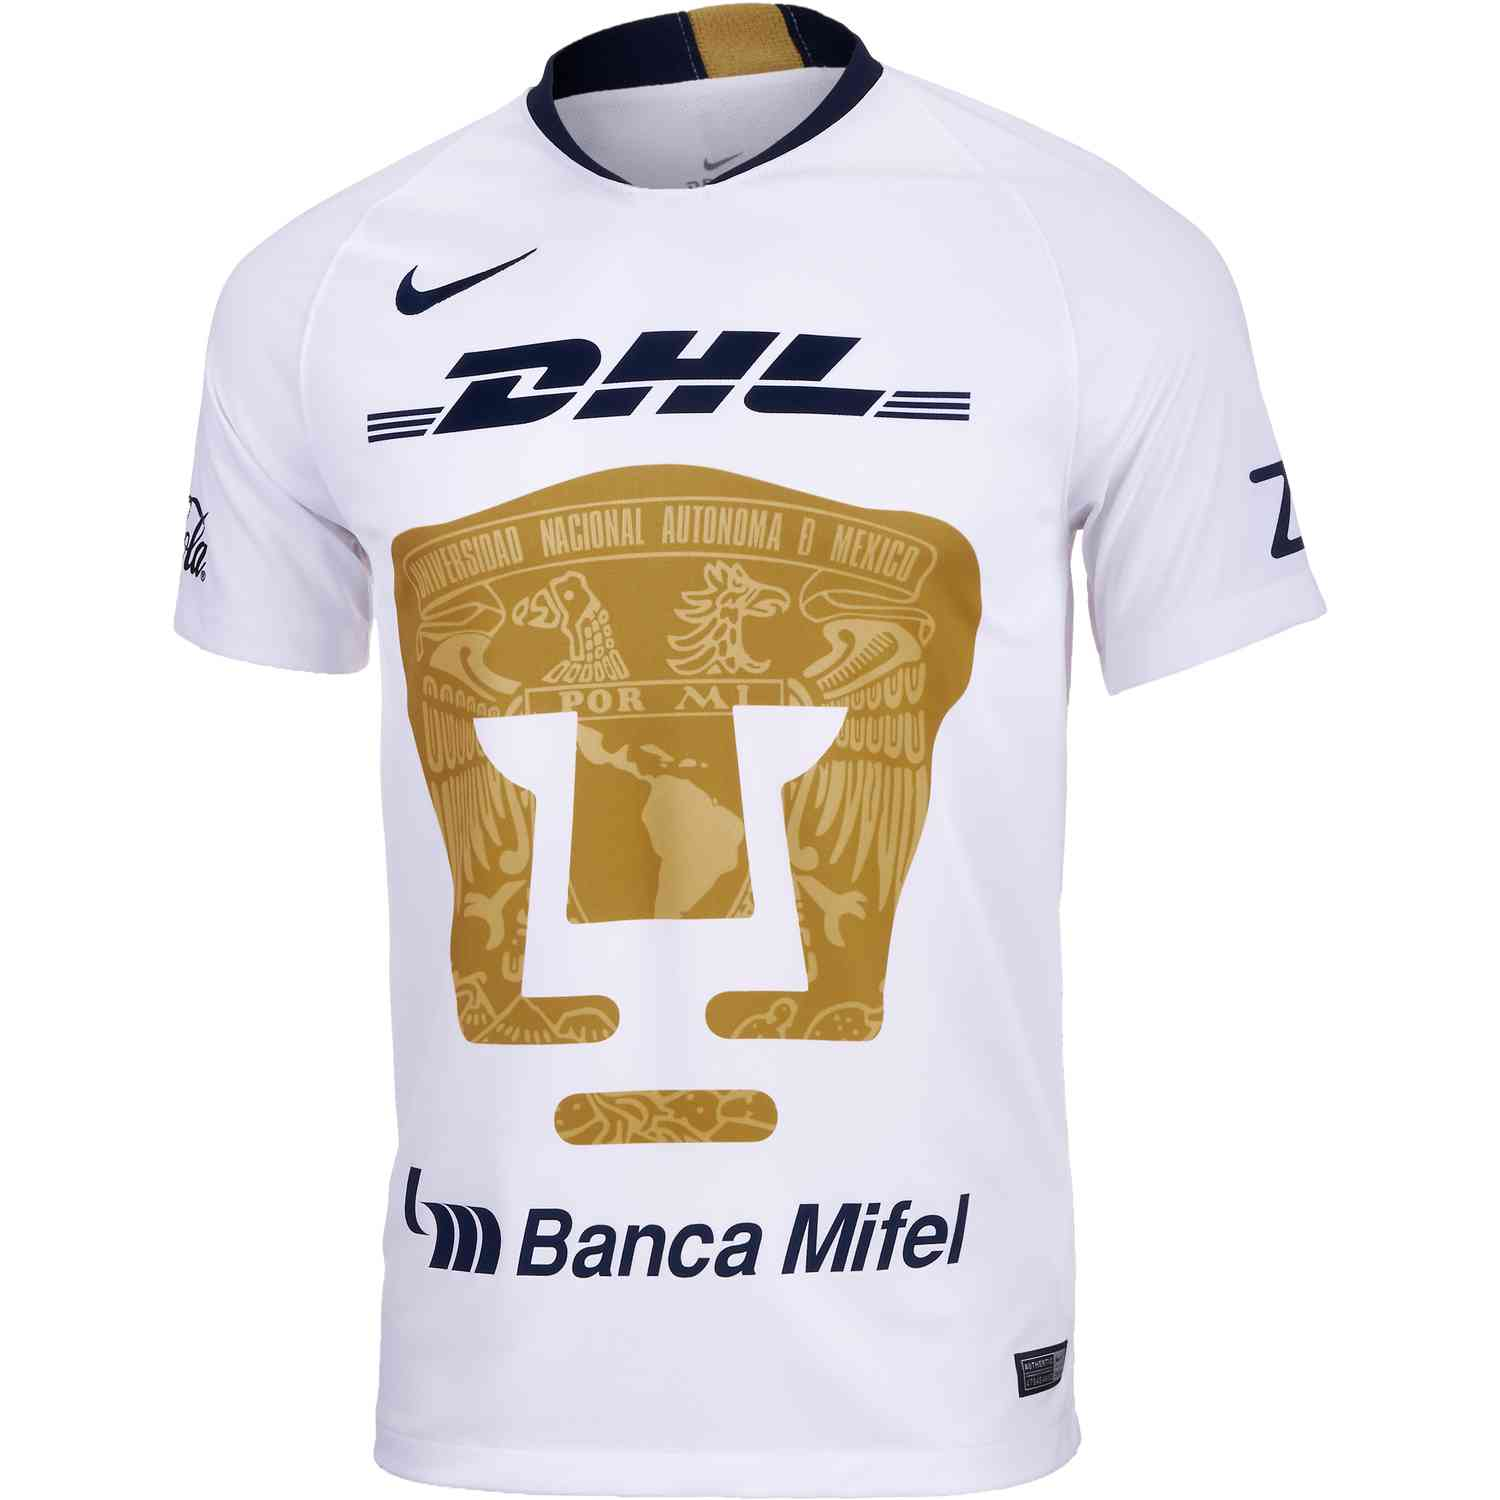 new arrival 963d2 e6643 2018/19 Nike PUMAS Home Jersey